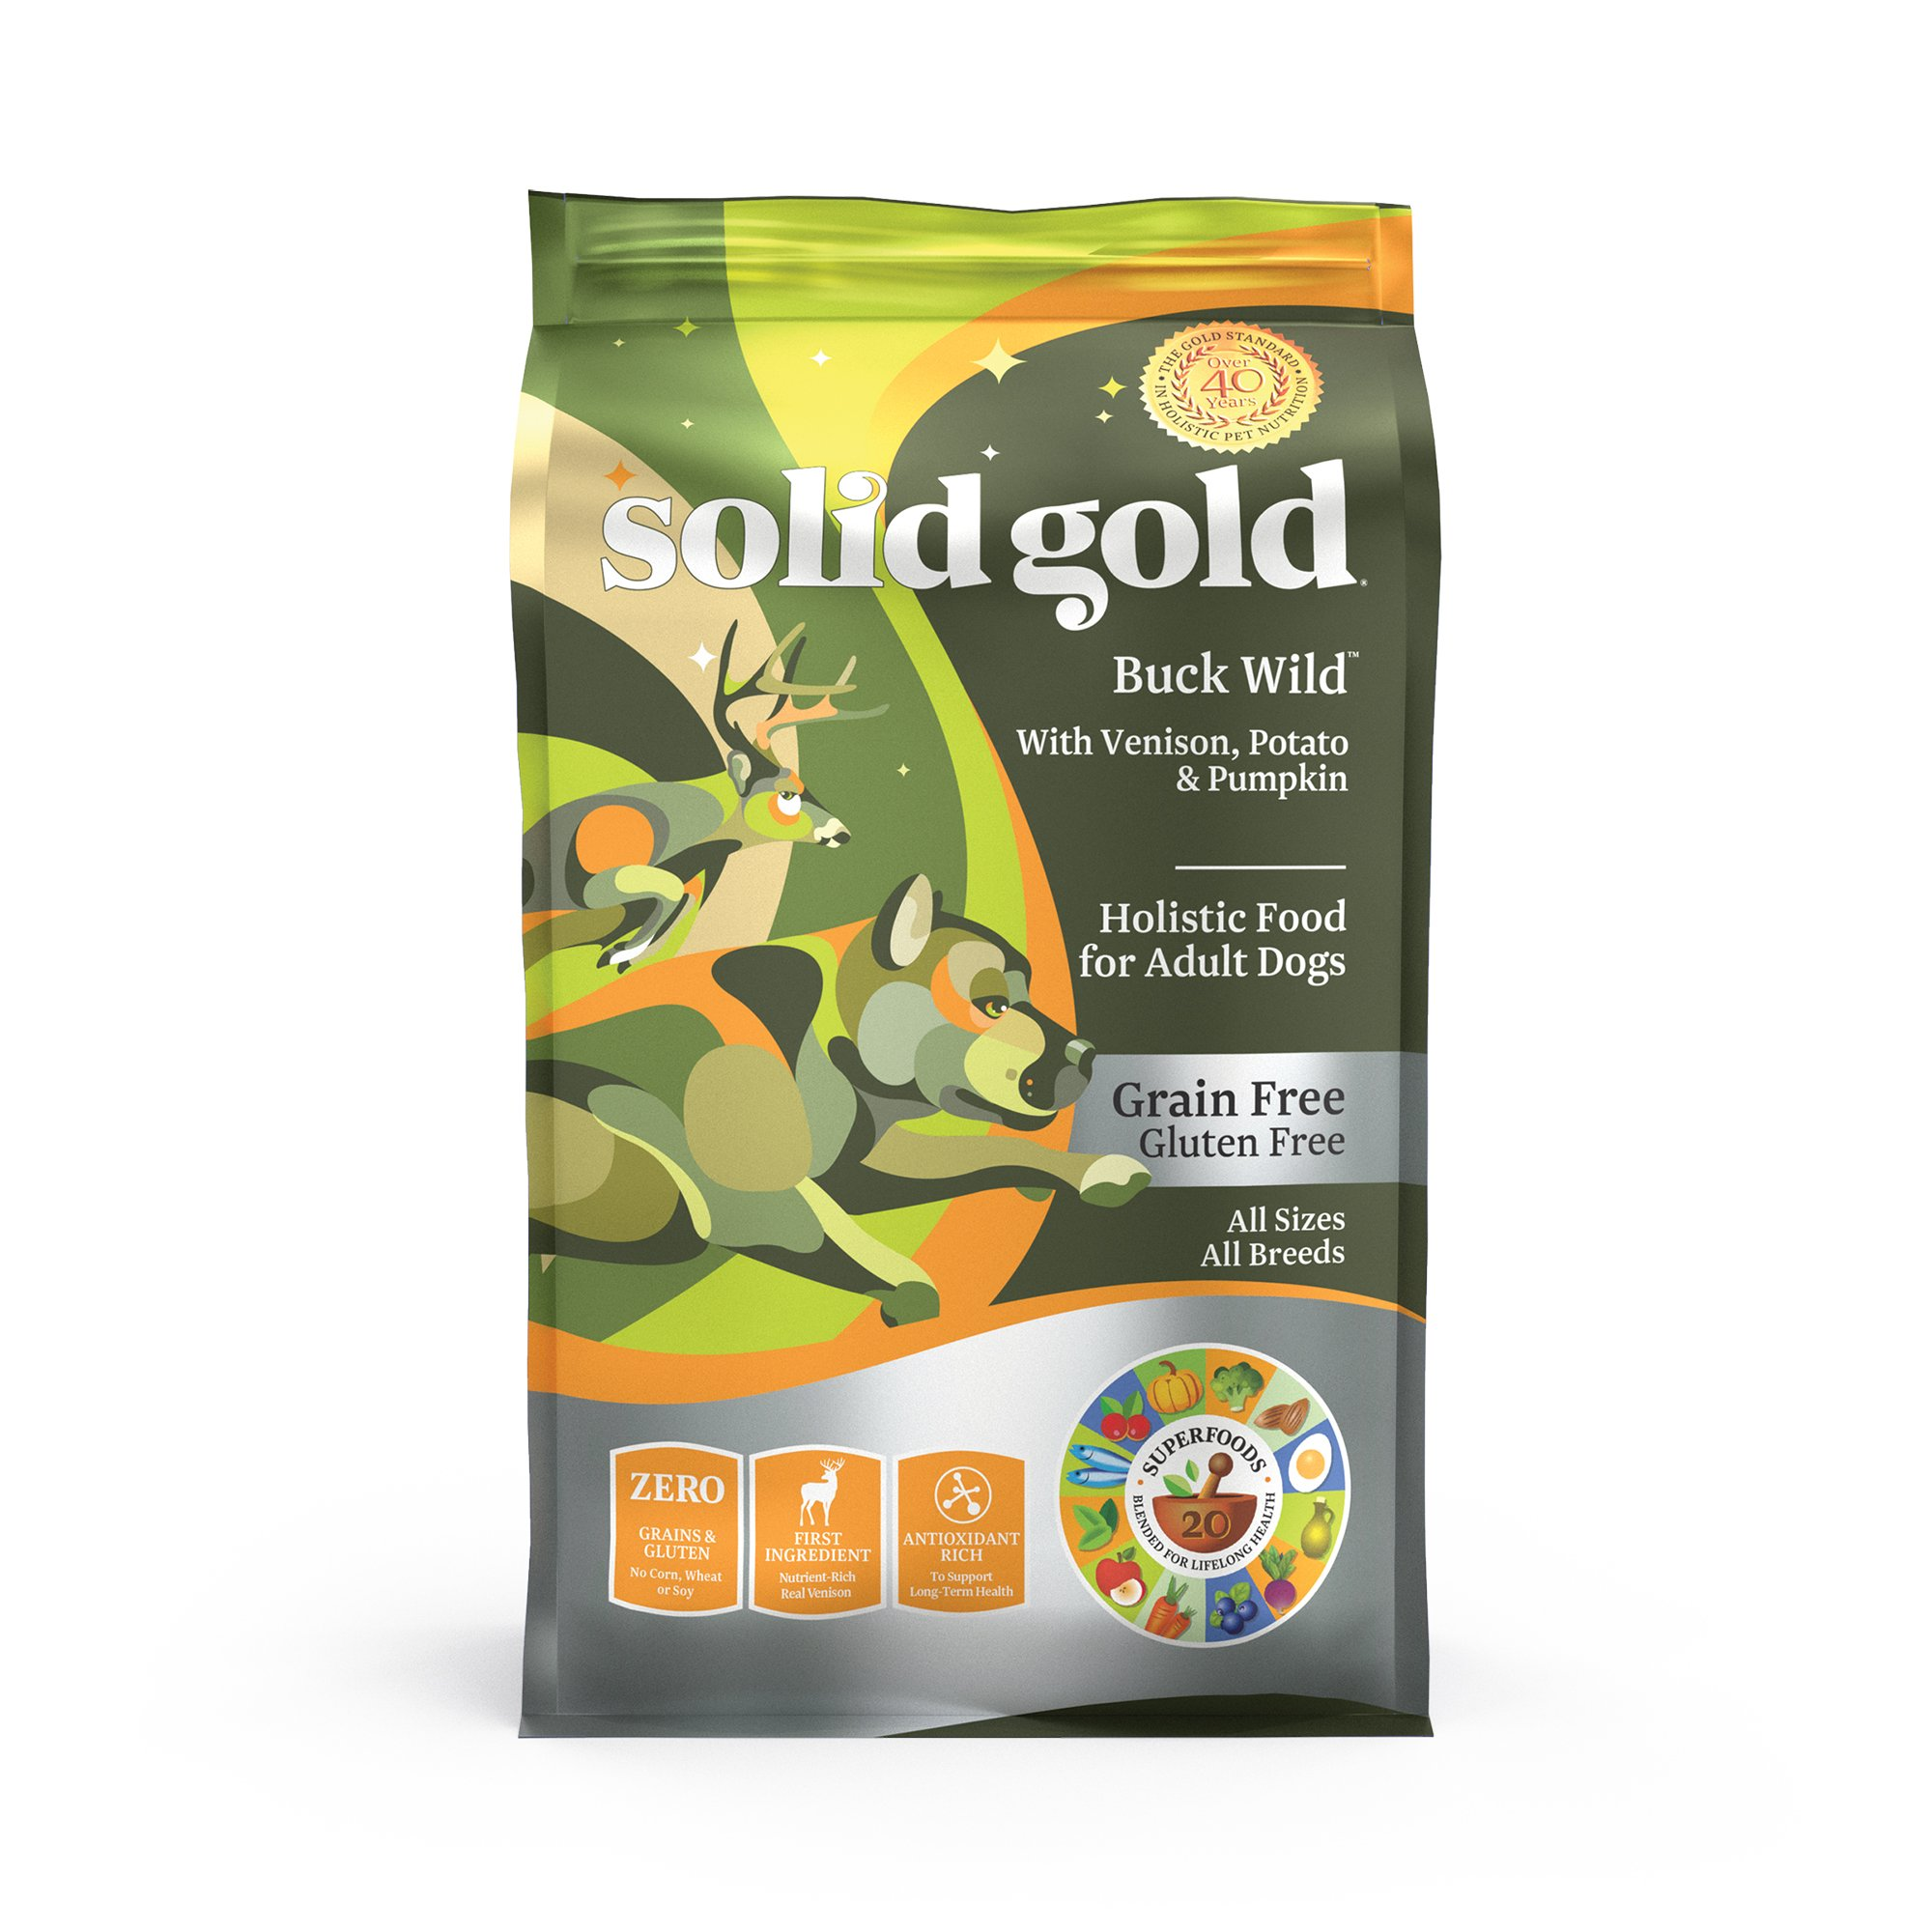 Solid Gold Grain-Free Dry Dog Food With Real Poultry, Fowl Or Game Venison, Potato & Pumpkin